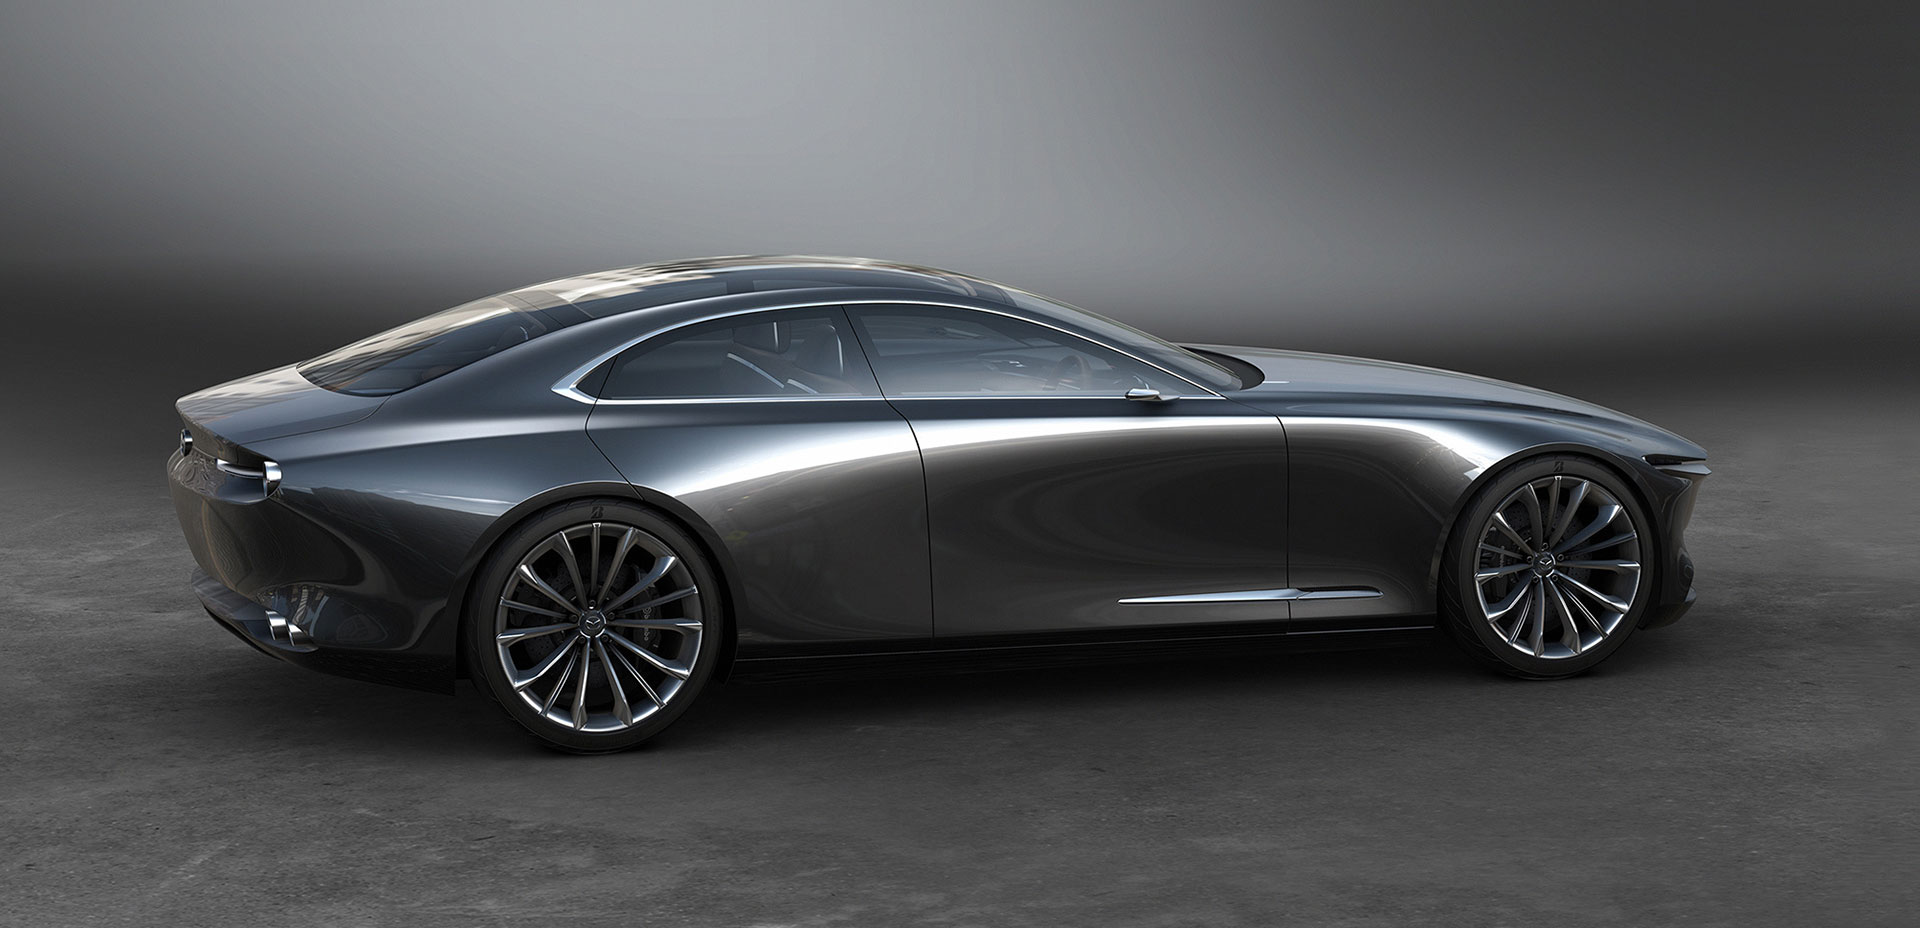 Mazda-Vision-Coupe-Arab-Motor-World